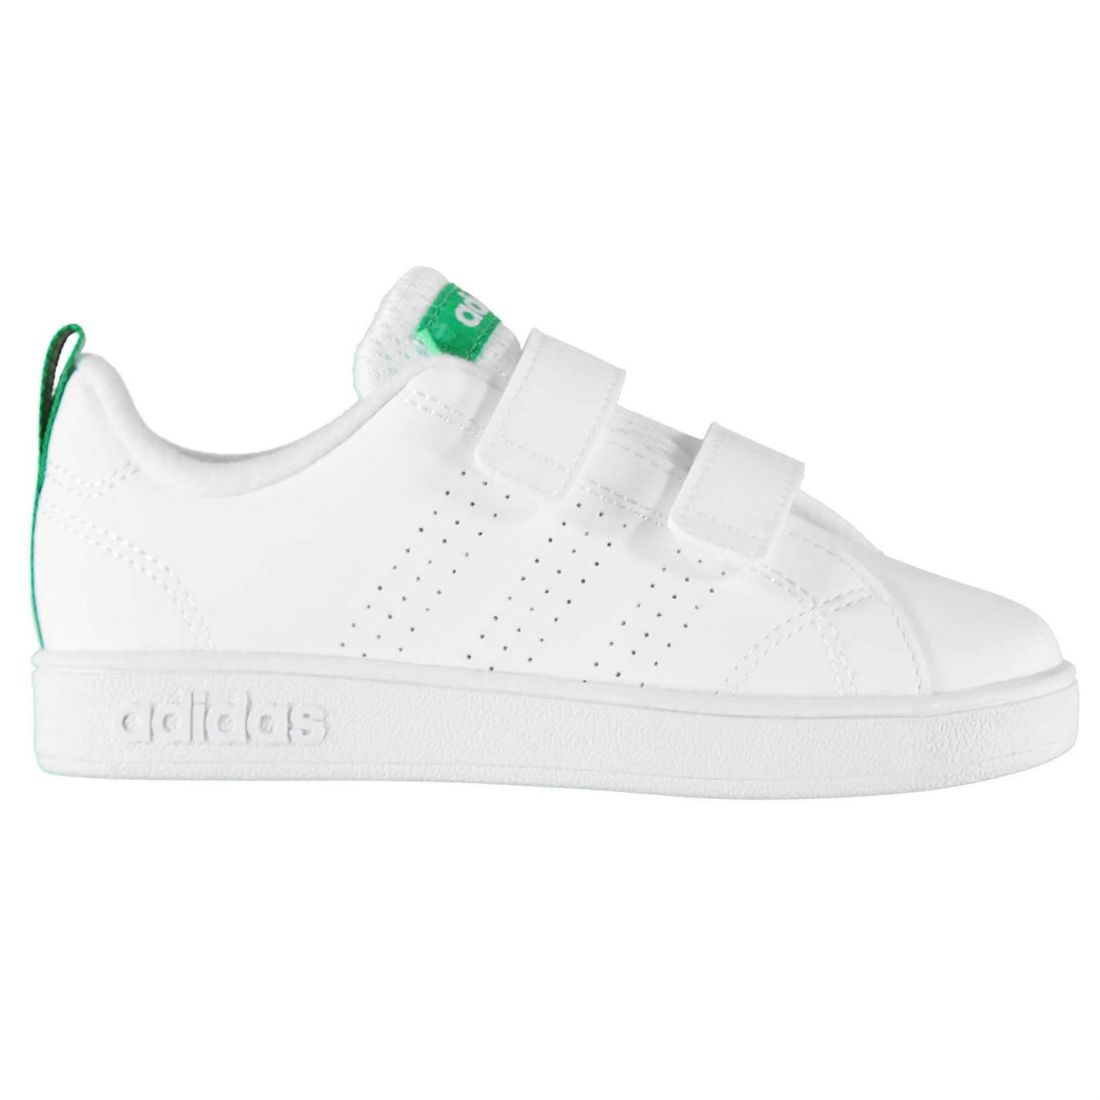 info for 6cc8c eafc3 Shoes adidas VS Advantage Clean CMF INF Size 23 AW4889 White. About this  product. Picture 1 of 3 ...